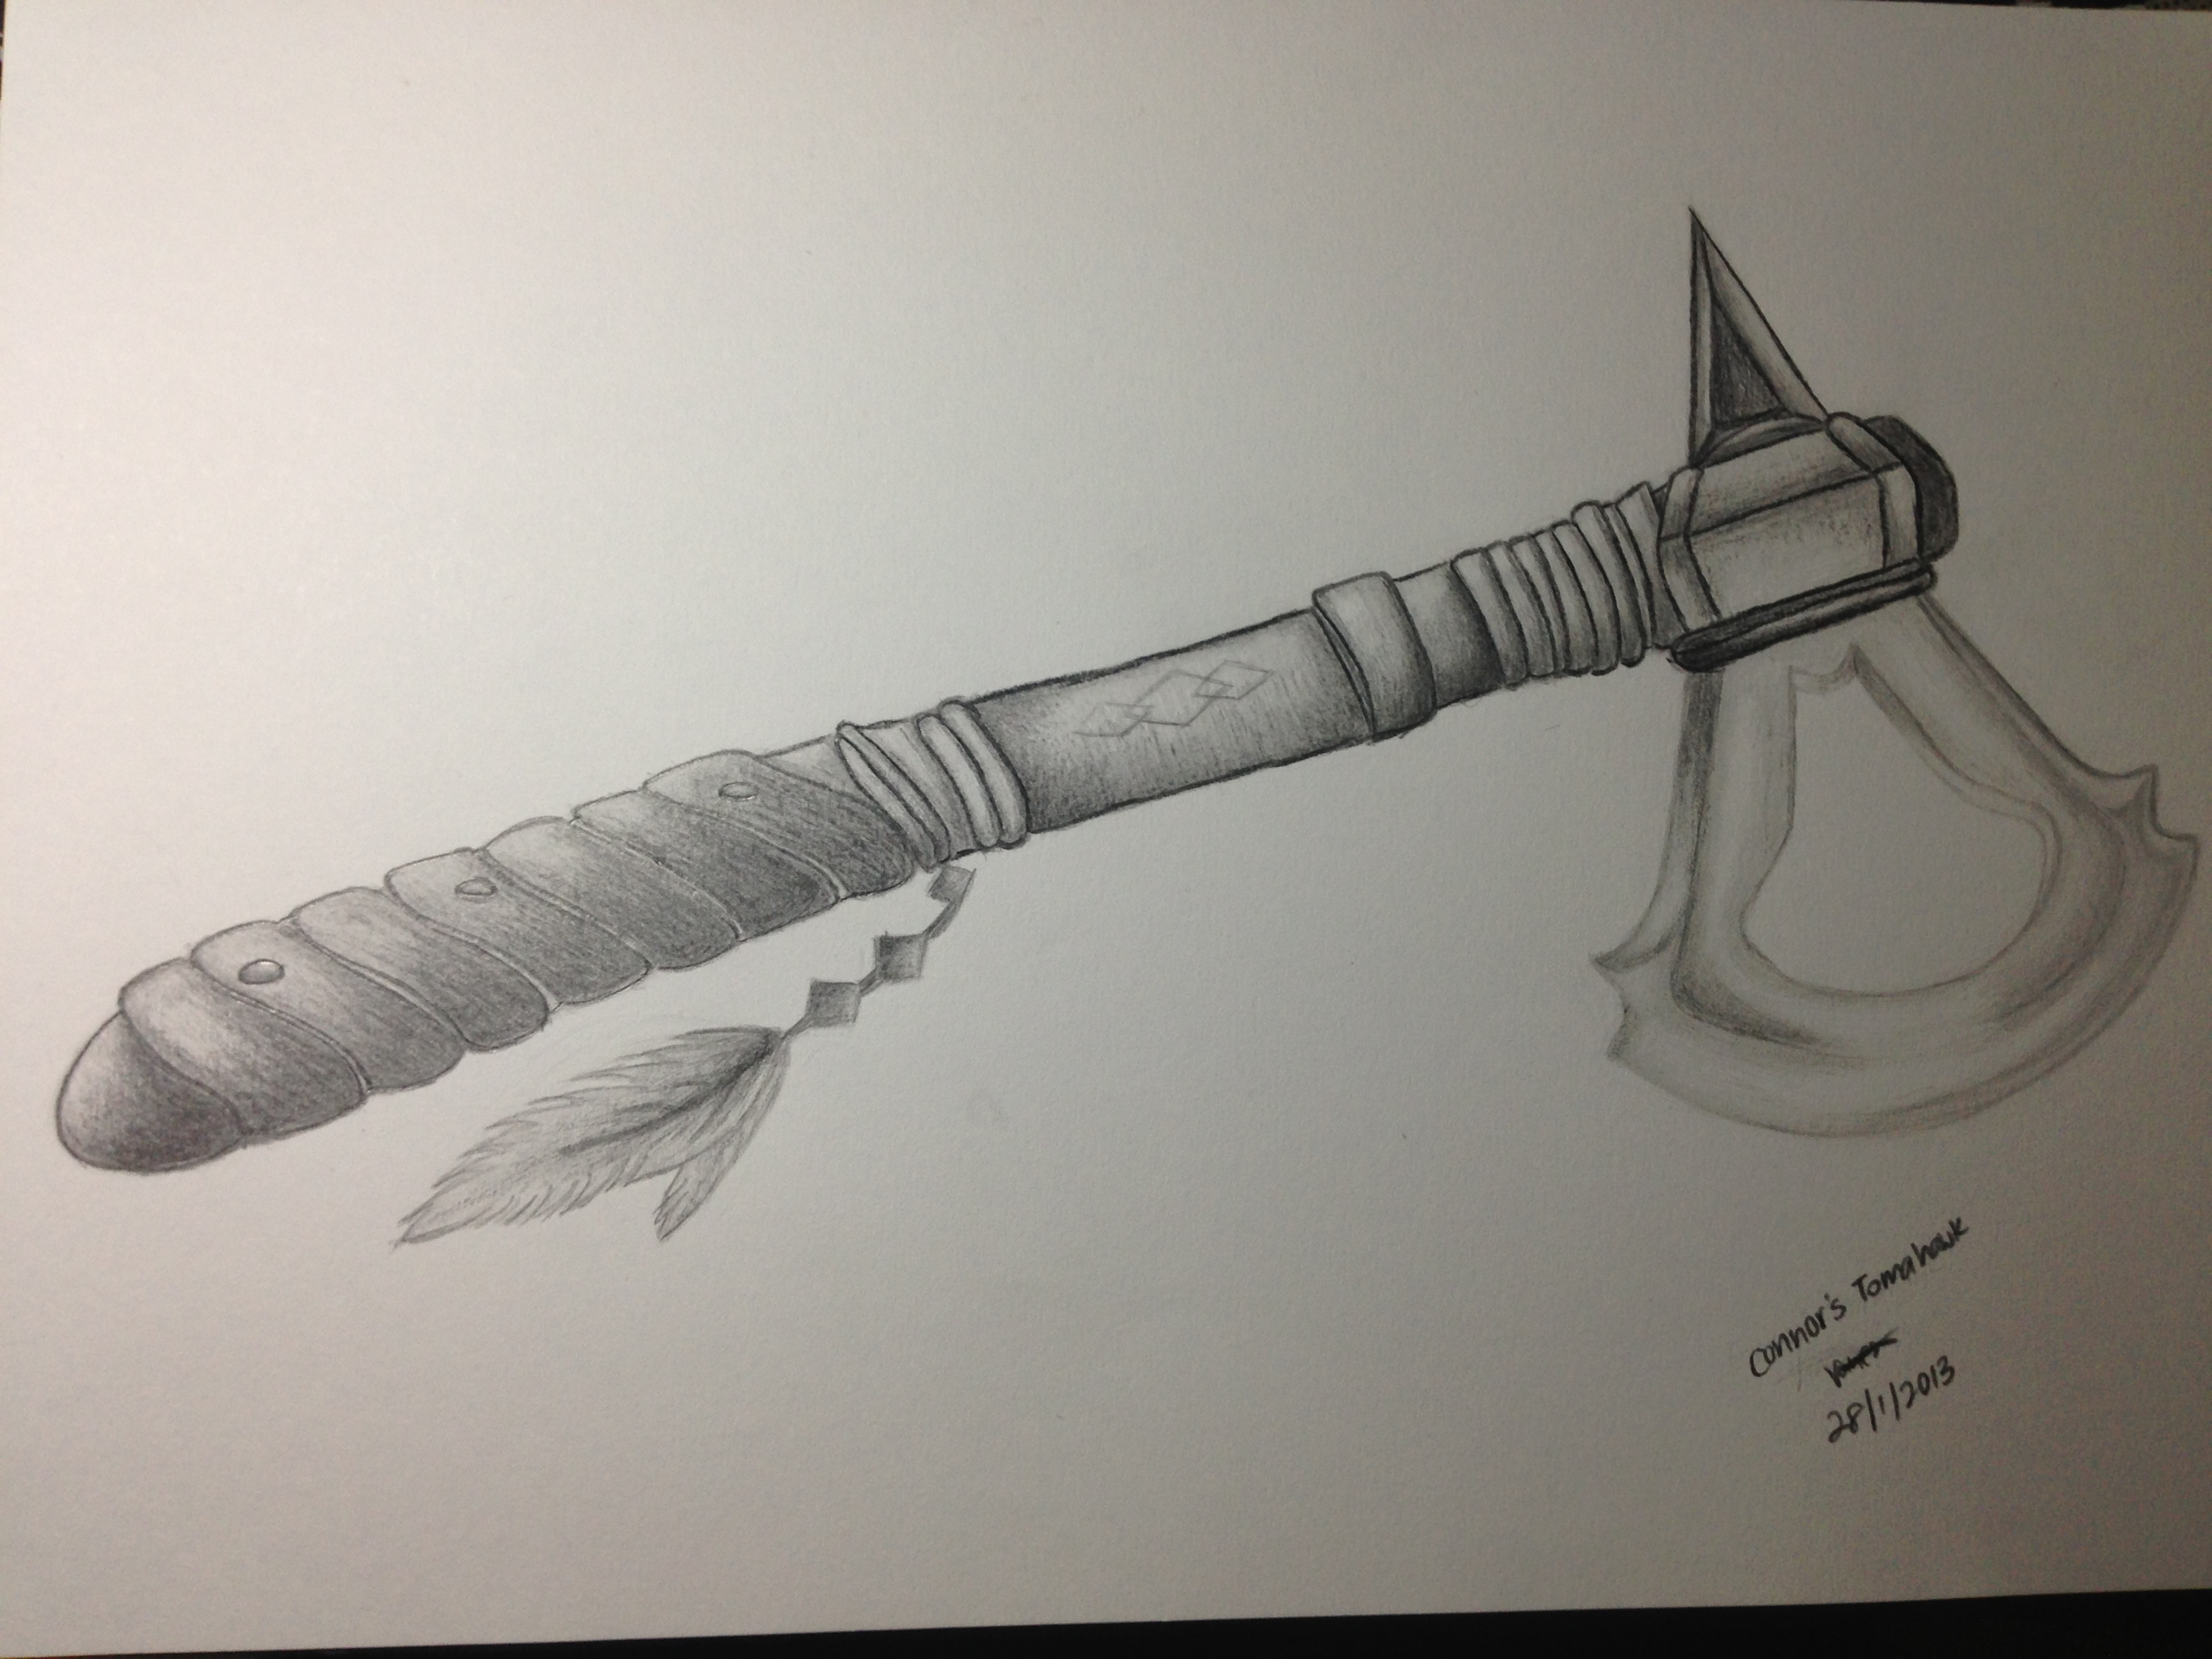 Drawn weapon tomahawk Creed on Tomahawk (Assassin's 3)